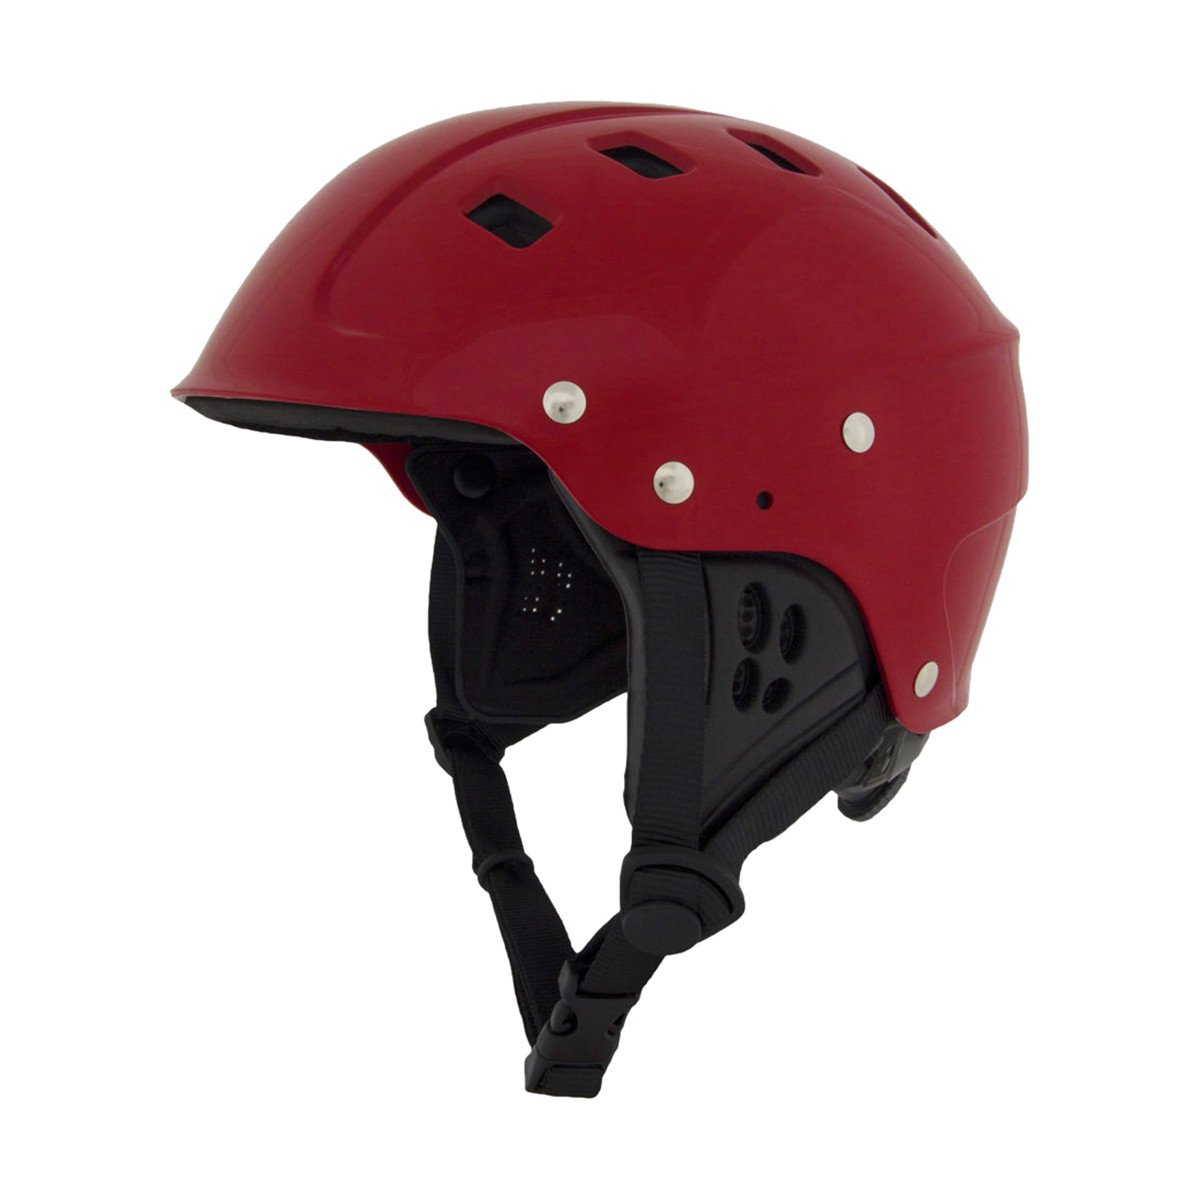 NRS Chaos Side Cut Helmet Red XL by NRS